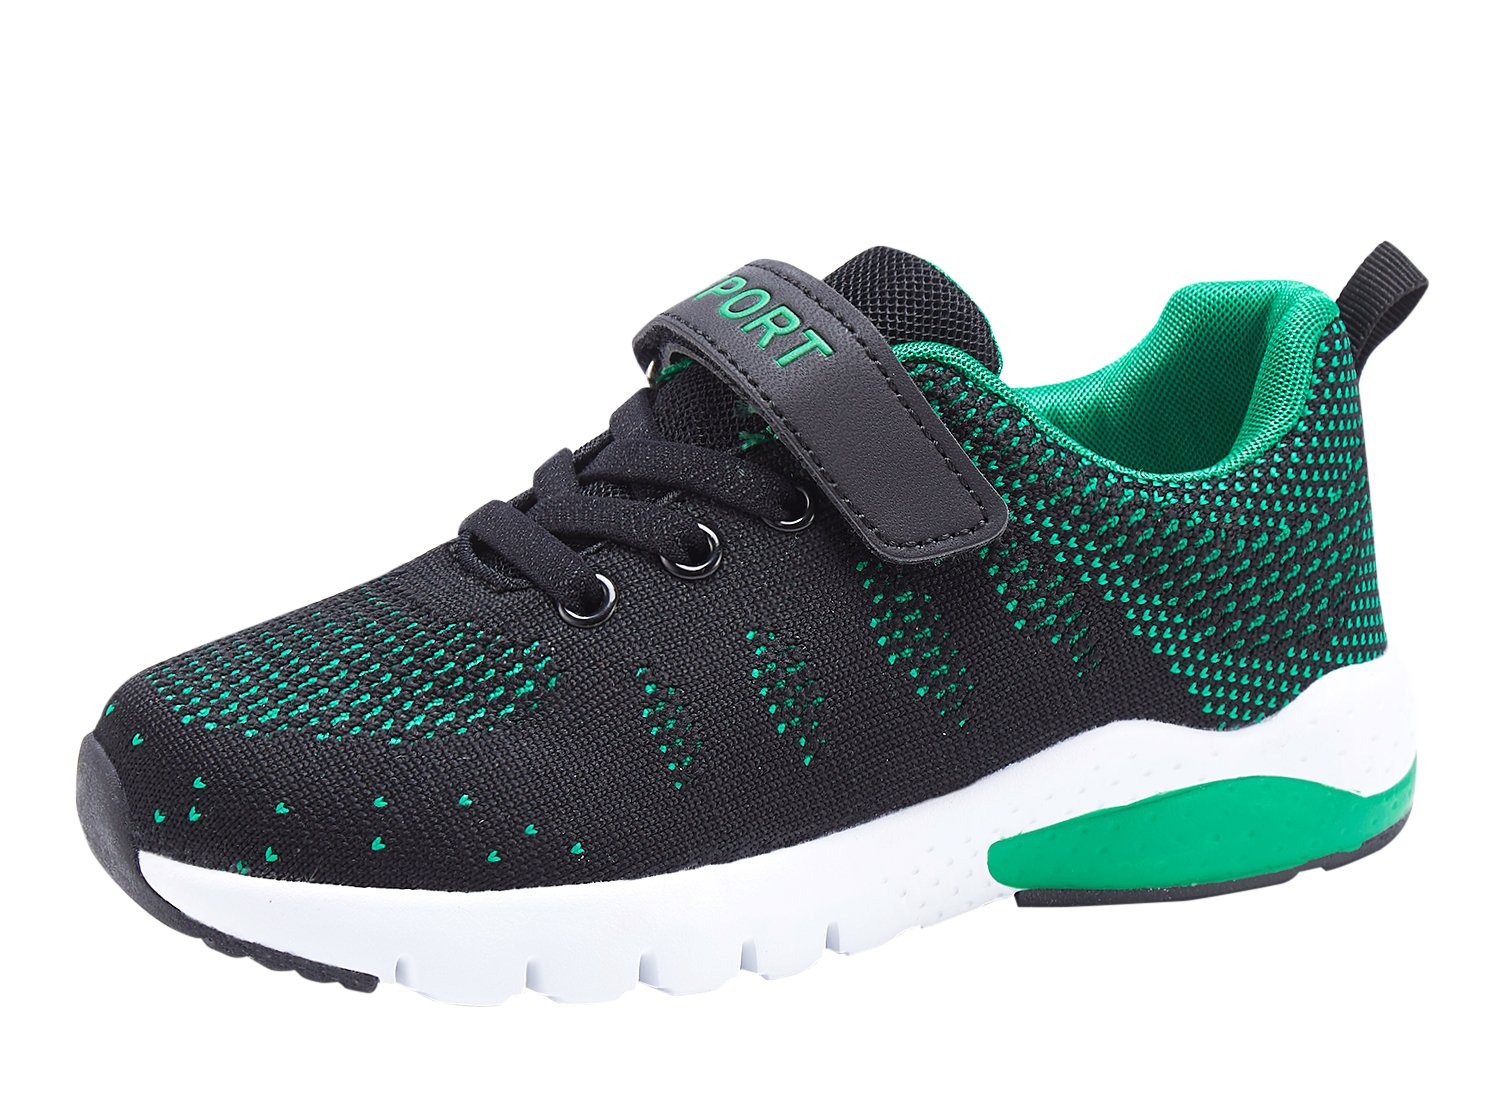 Kids Running Tennis Shoes Lightweight Casual Walking Sneakers for Boys and Girls (Little Kid/Big Kid),Blackish Green,US 1 M Little Kid